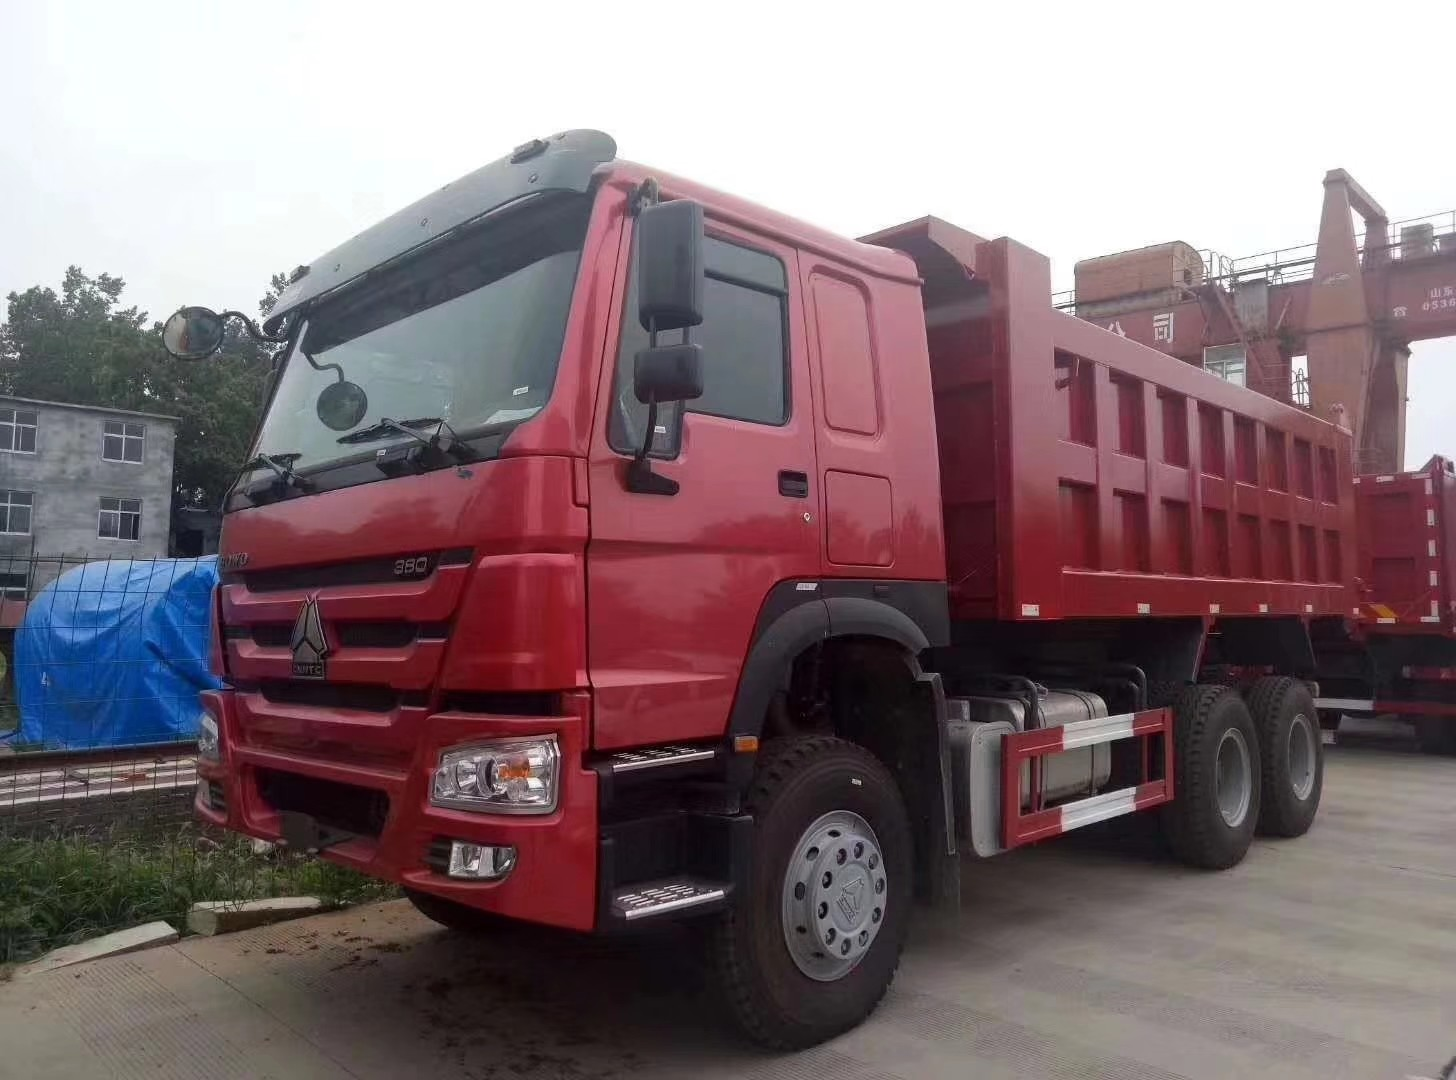 Red Heavy Duty Dump Truck Euro 2 Emission Standard With ZF8118 Steering